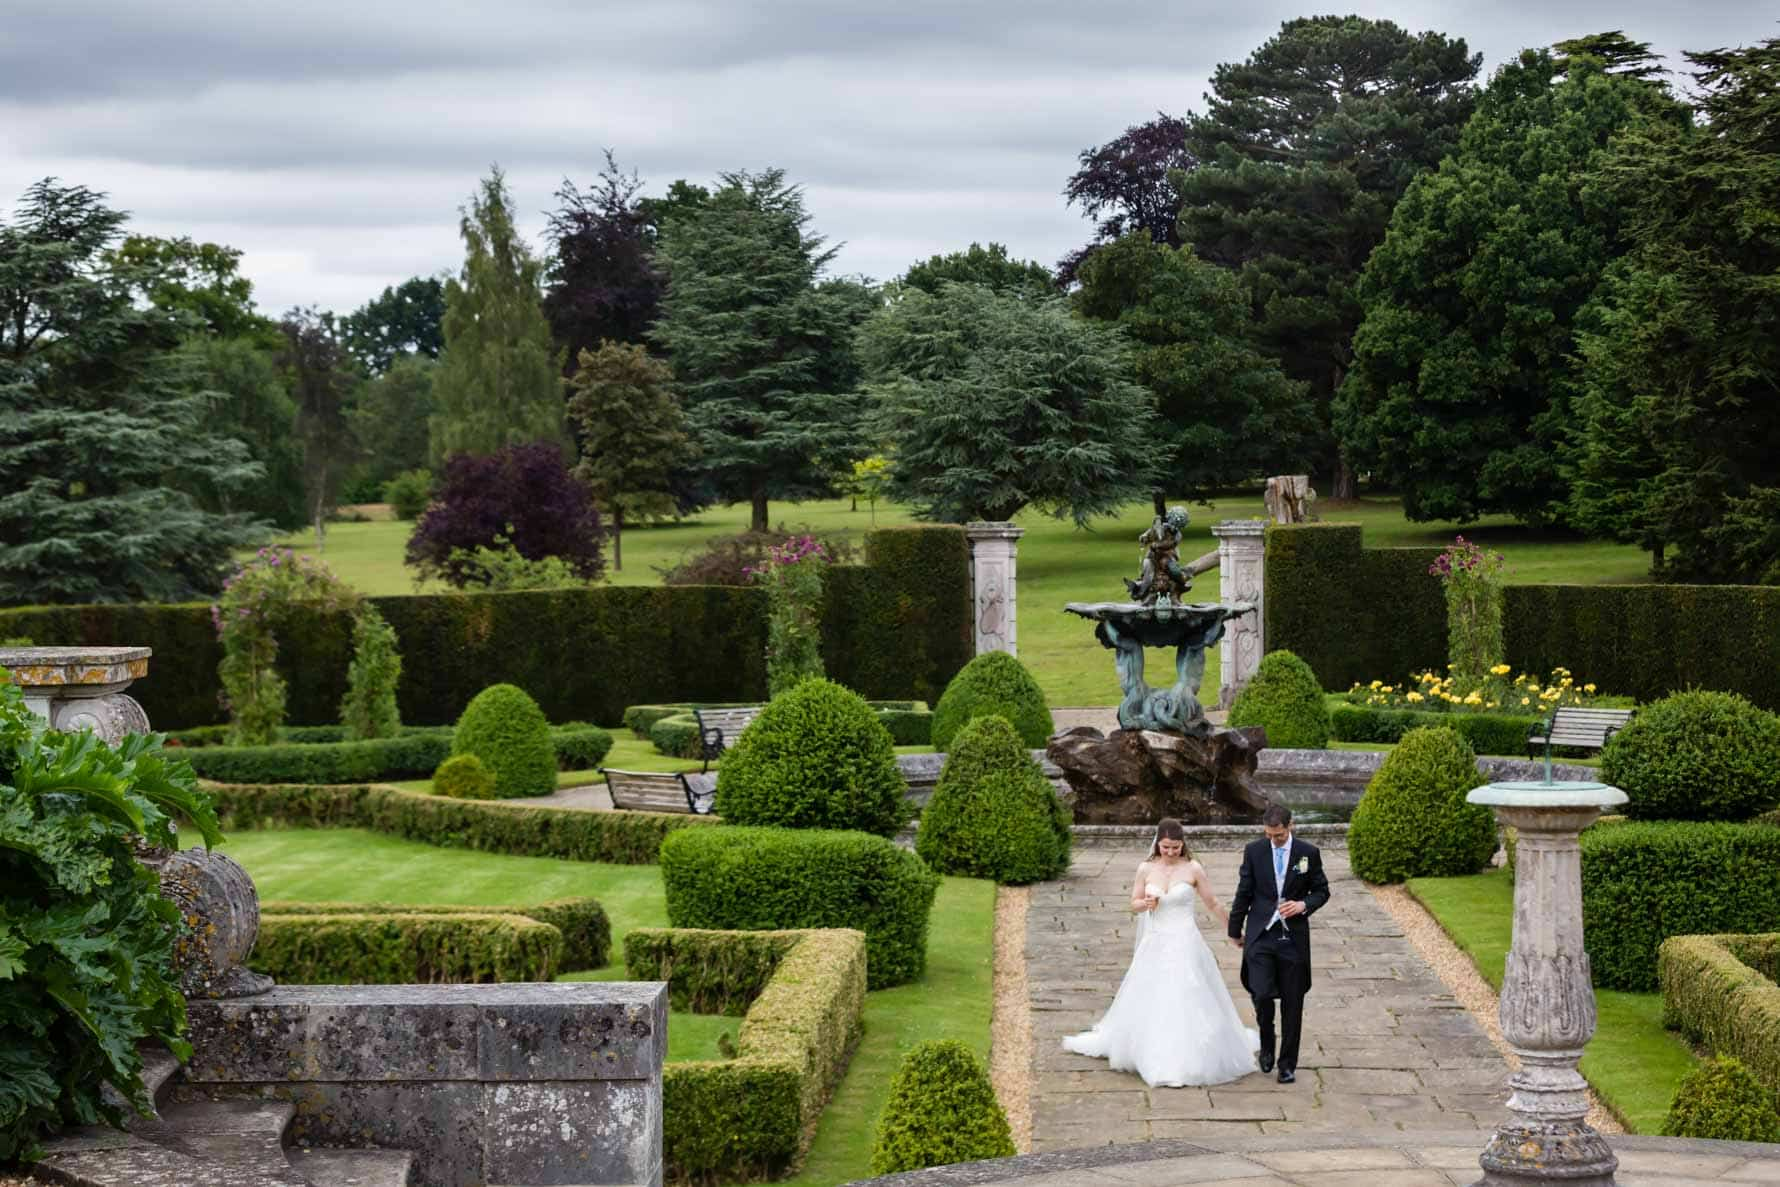 Bride and groom in the grounds of Luton Hoo Hotel in Bedfordshire